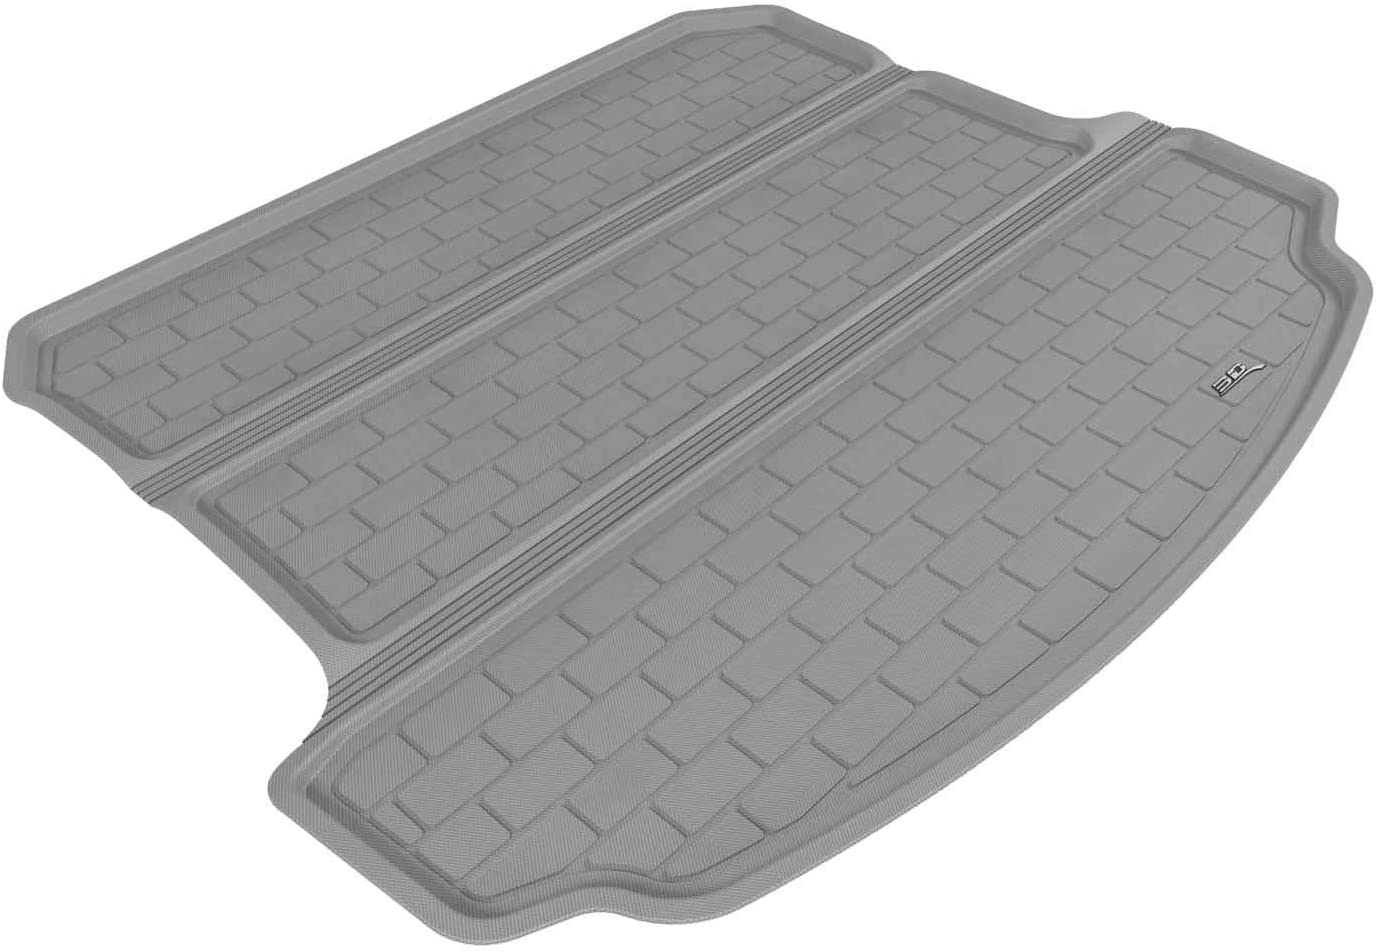 3D MAXpider Cargo Custom Fit All-Weather Floor Mat for Select Acura MDX Models Gray Kagu Rubber